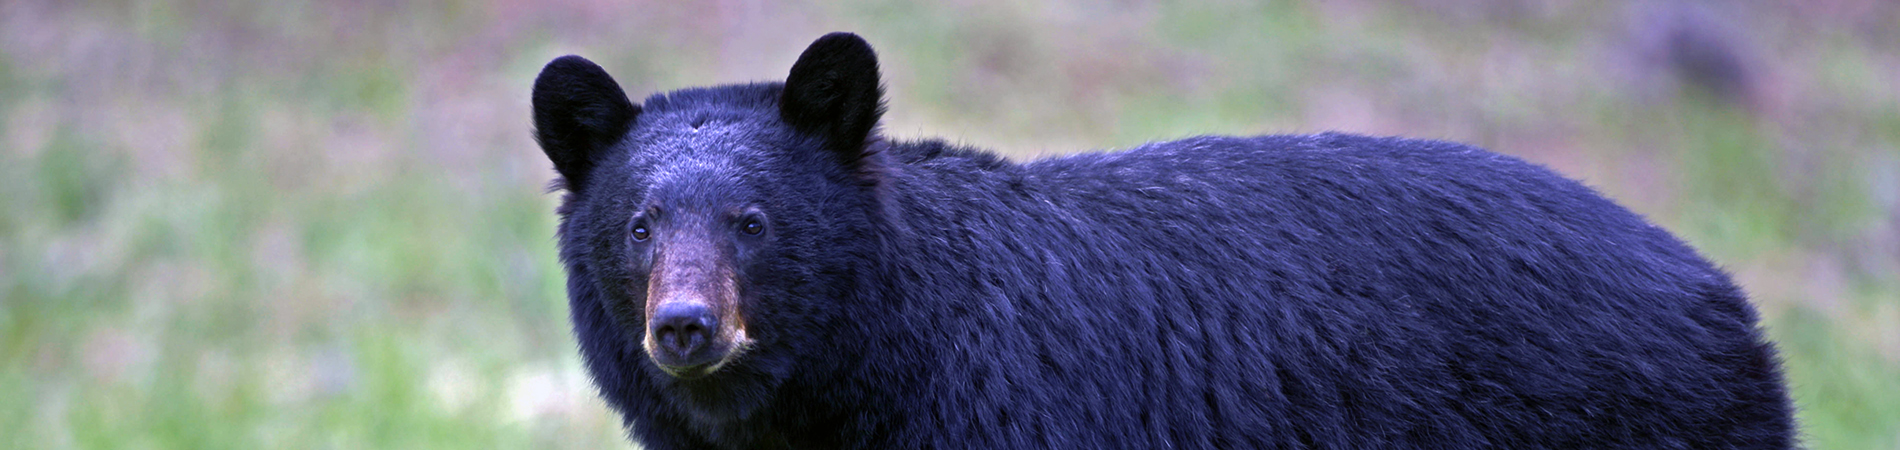 Black Bear Wandering